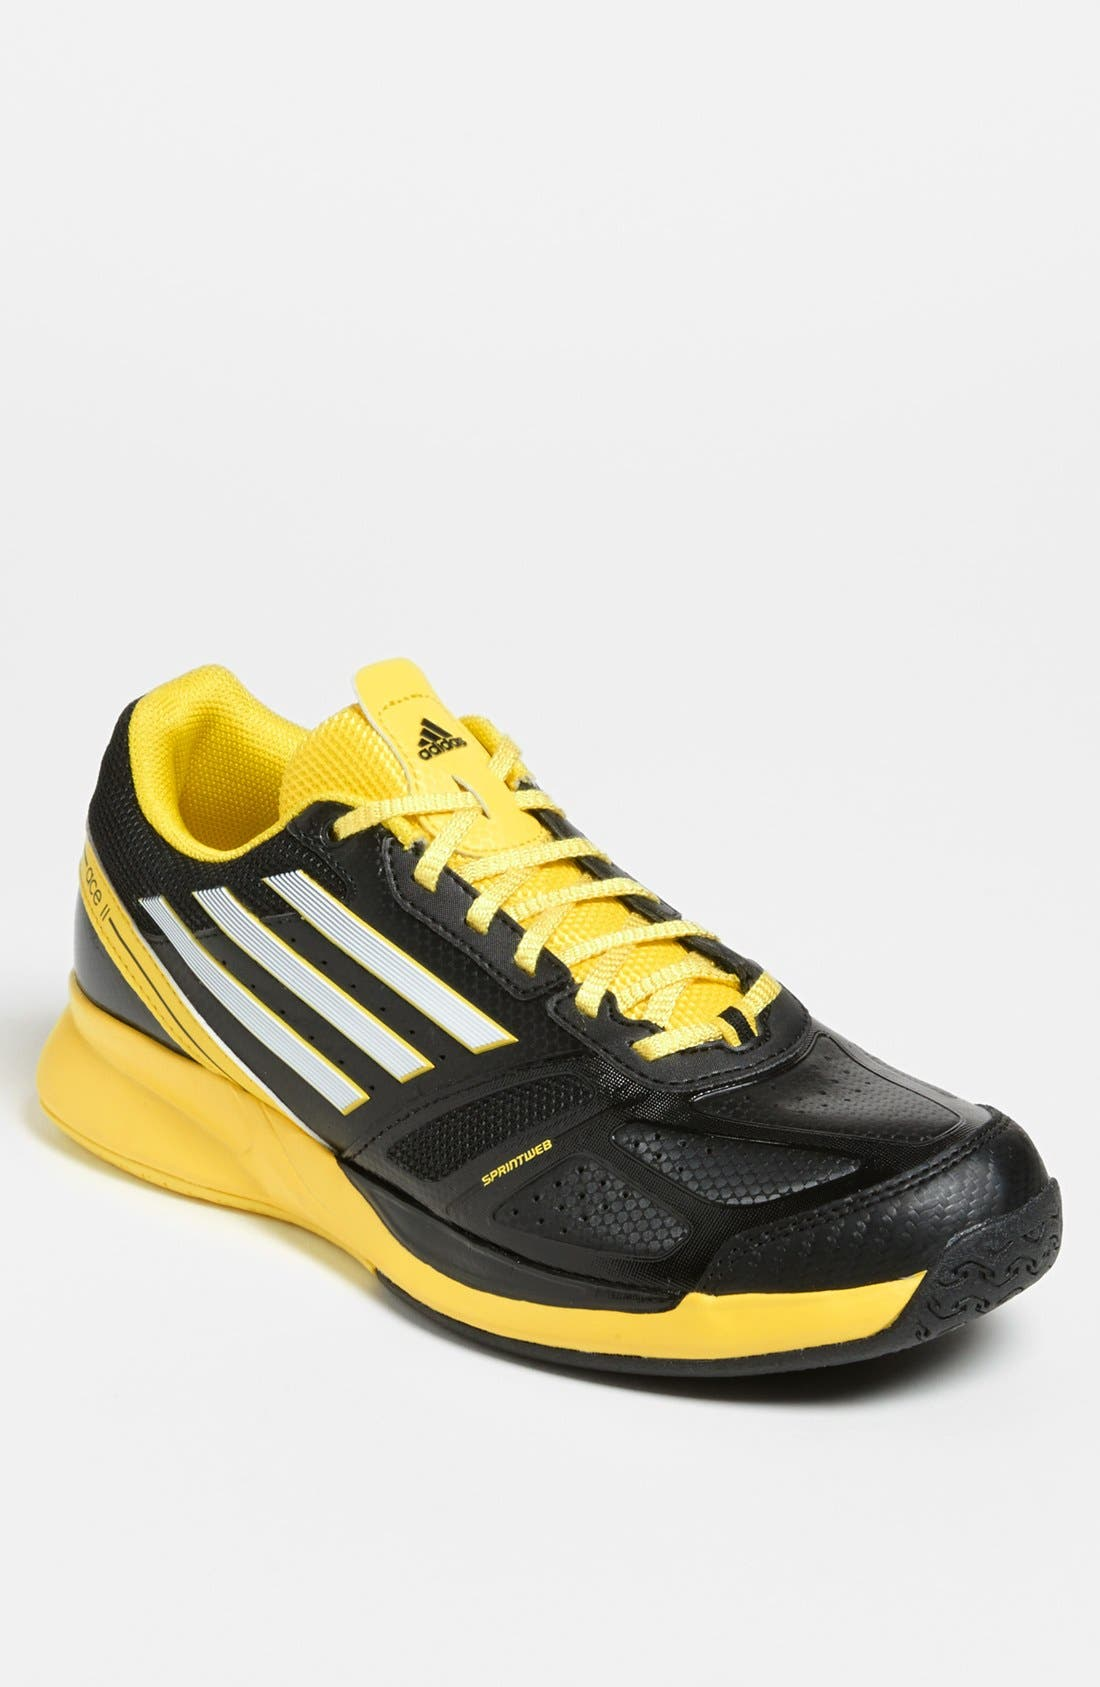 Alternate Image 1 Selected - adidas 'adiZero Ace II' Tennis Shoe (Men)